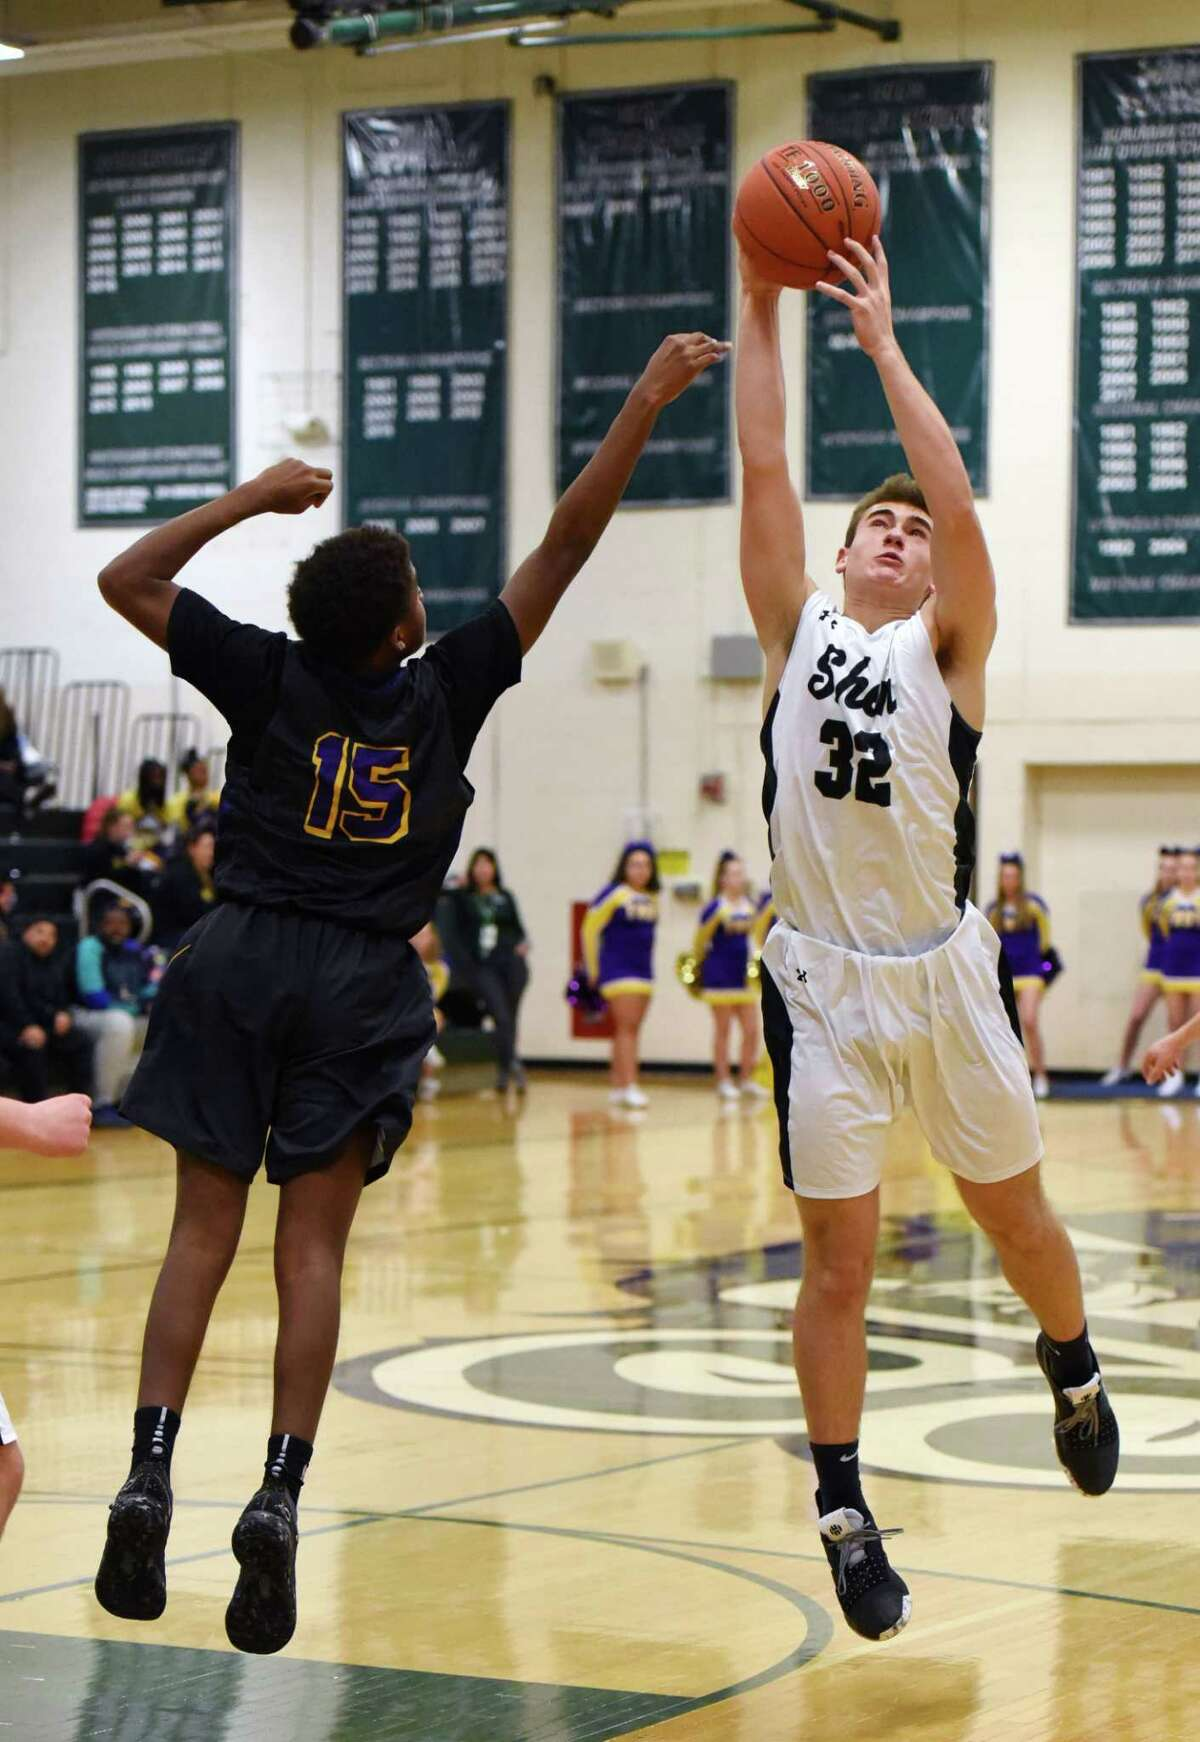 Shenendehowa's Jake Reinisch gains control over the ball during a game against Troy Friday, Jan. 4, 2019 at Shenendehowa High School in Shenendehowa, N.Y. (Phoebe Sheehan/Times Union) ORG XMIT: 20045837A